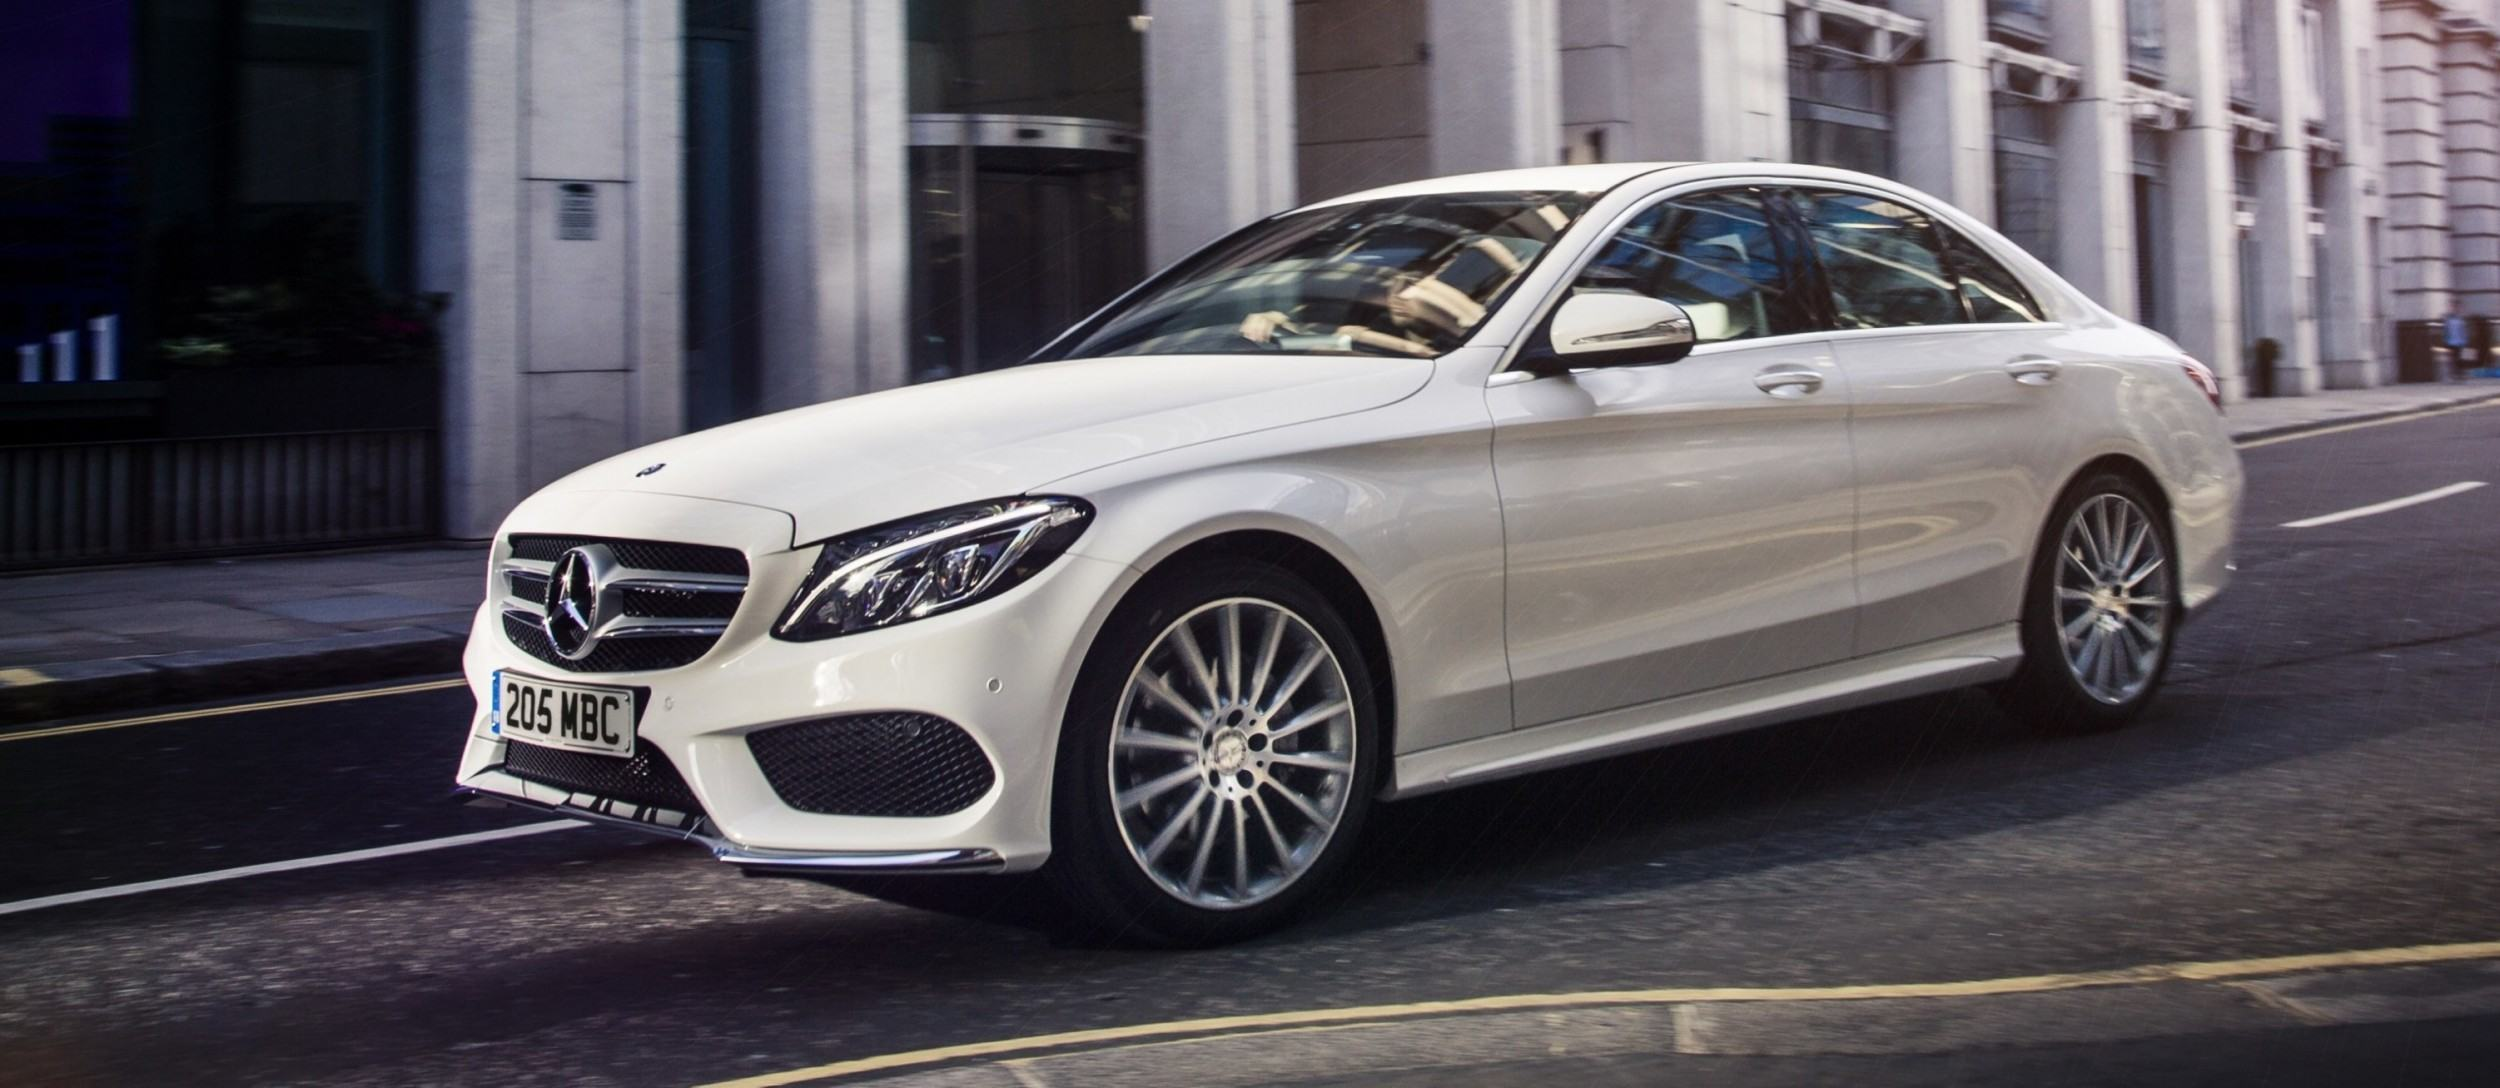 2015 mercedes benz c class in 40 new photos from london for 2015 mercedes benz c400